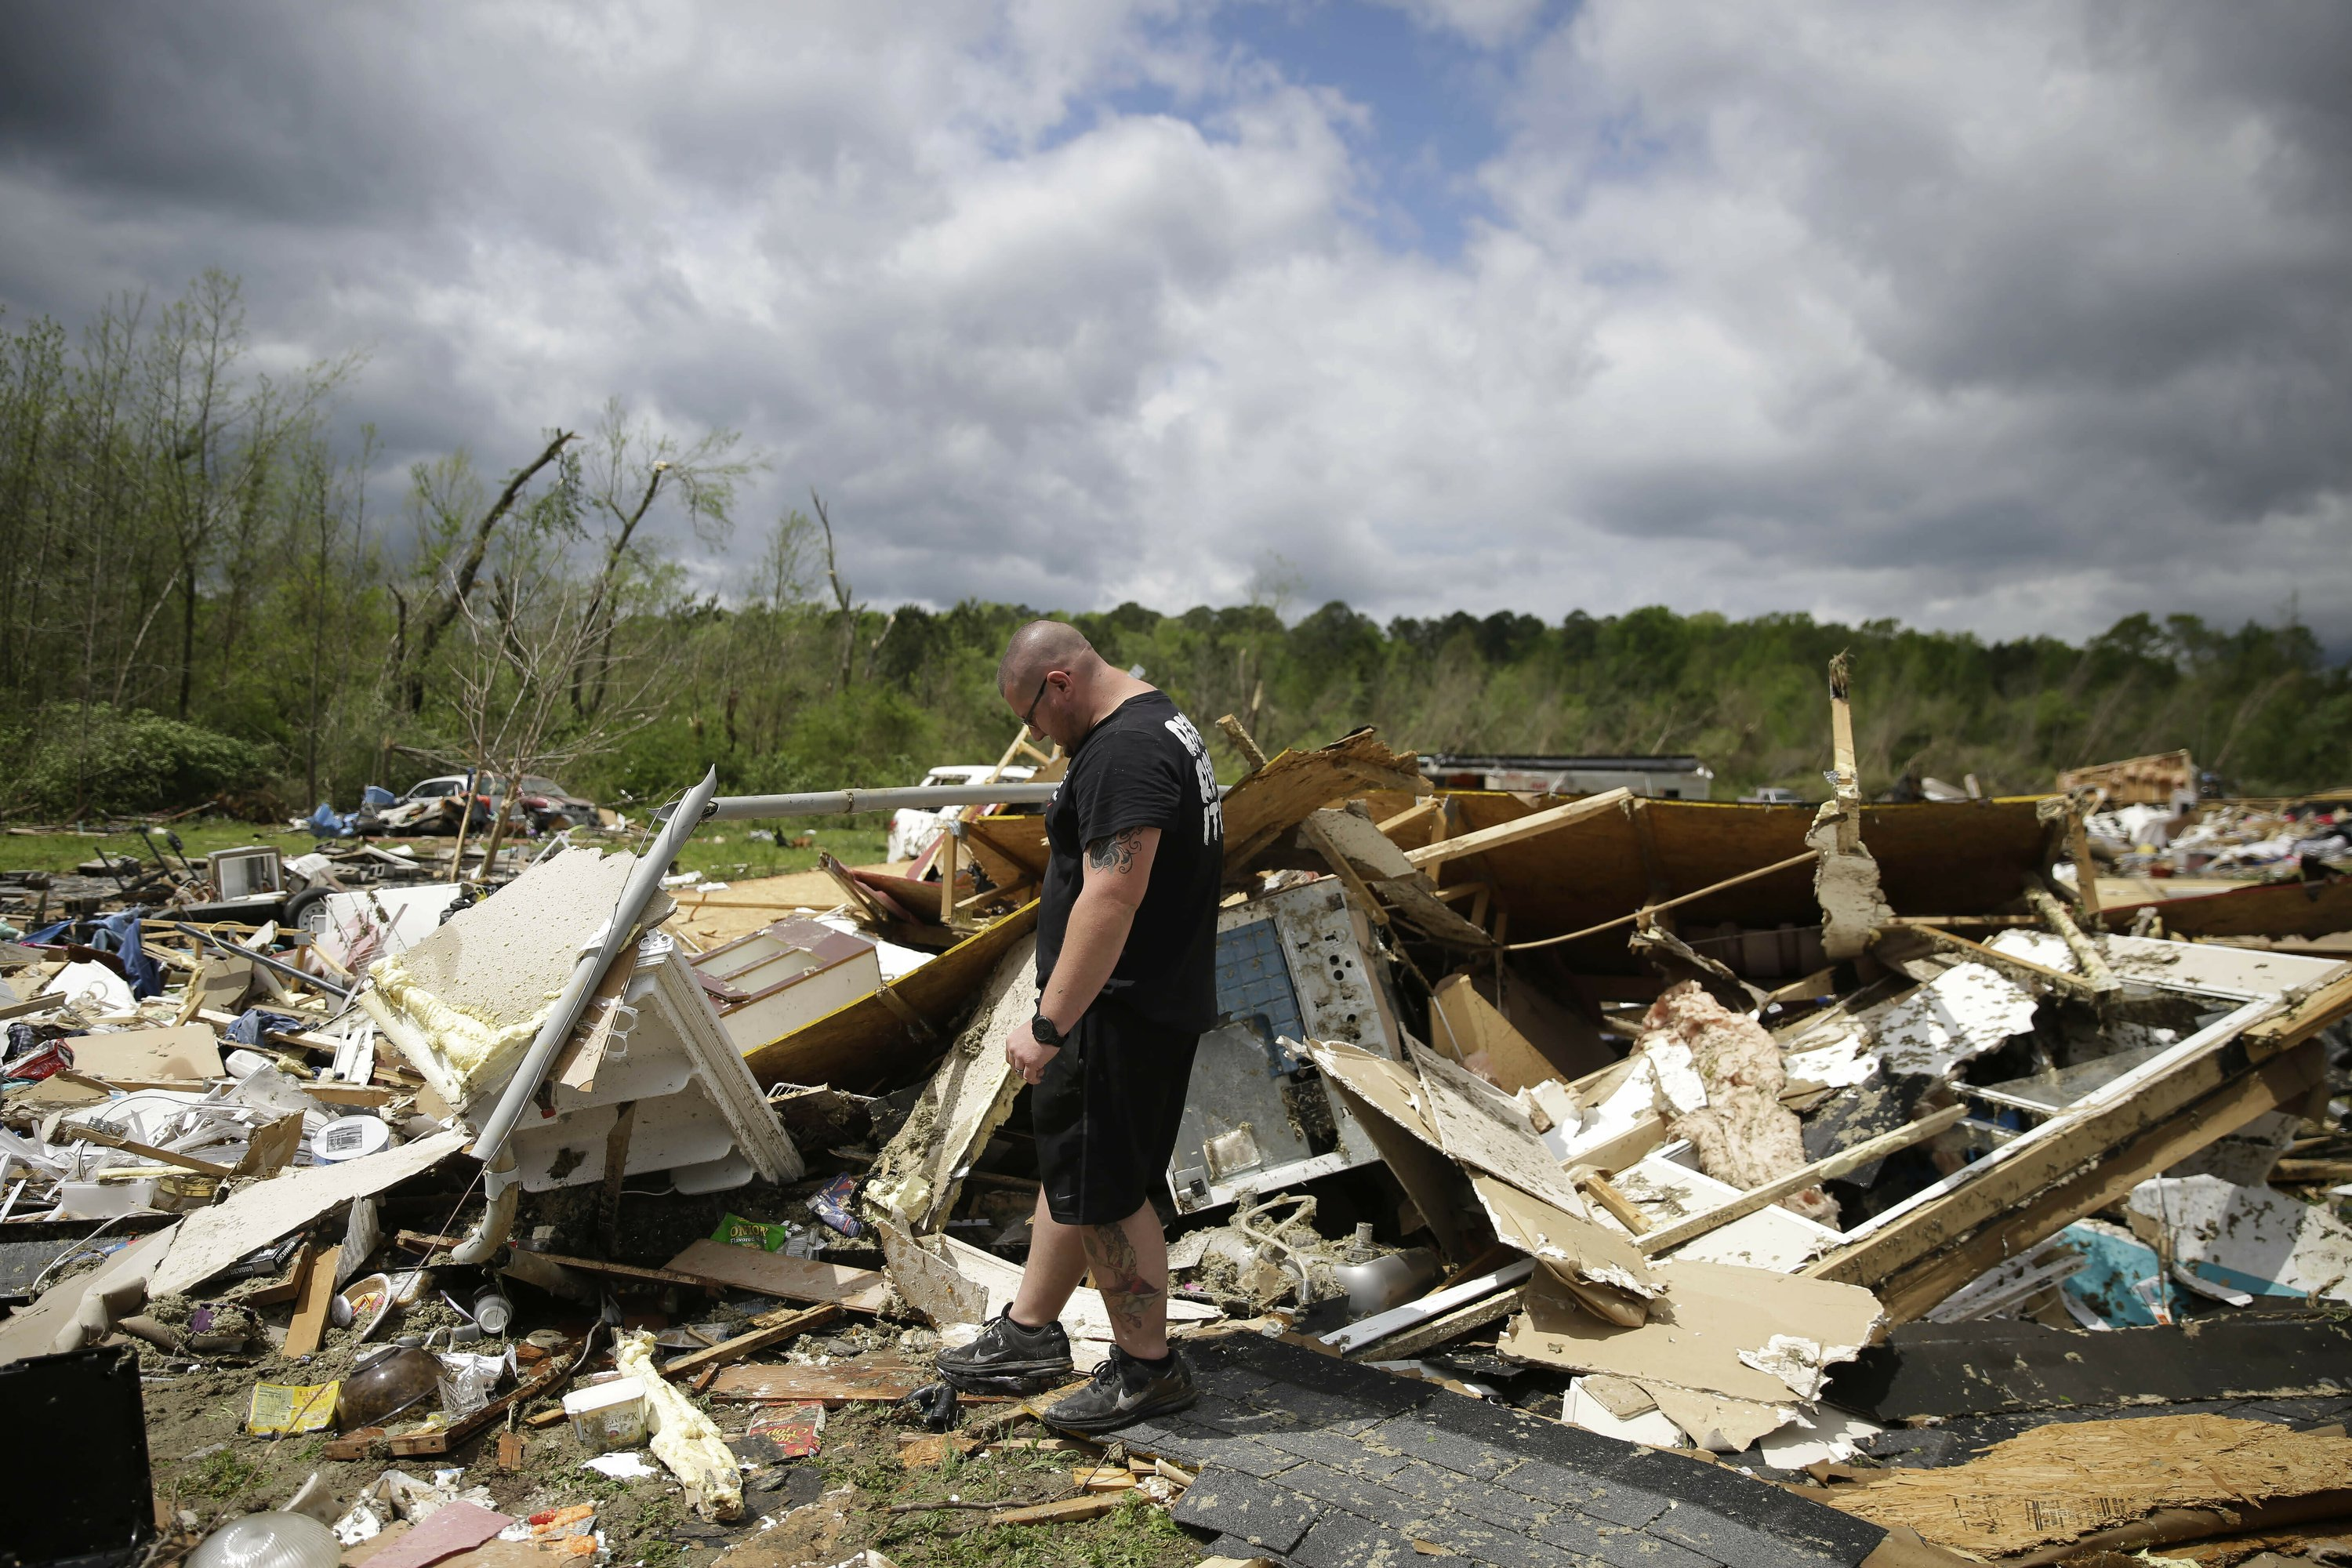 Storm tears through South amid pandemic; at least 30 dead